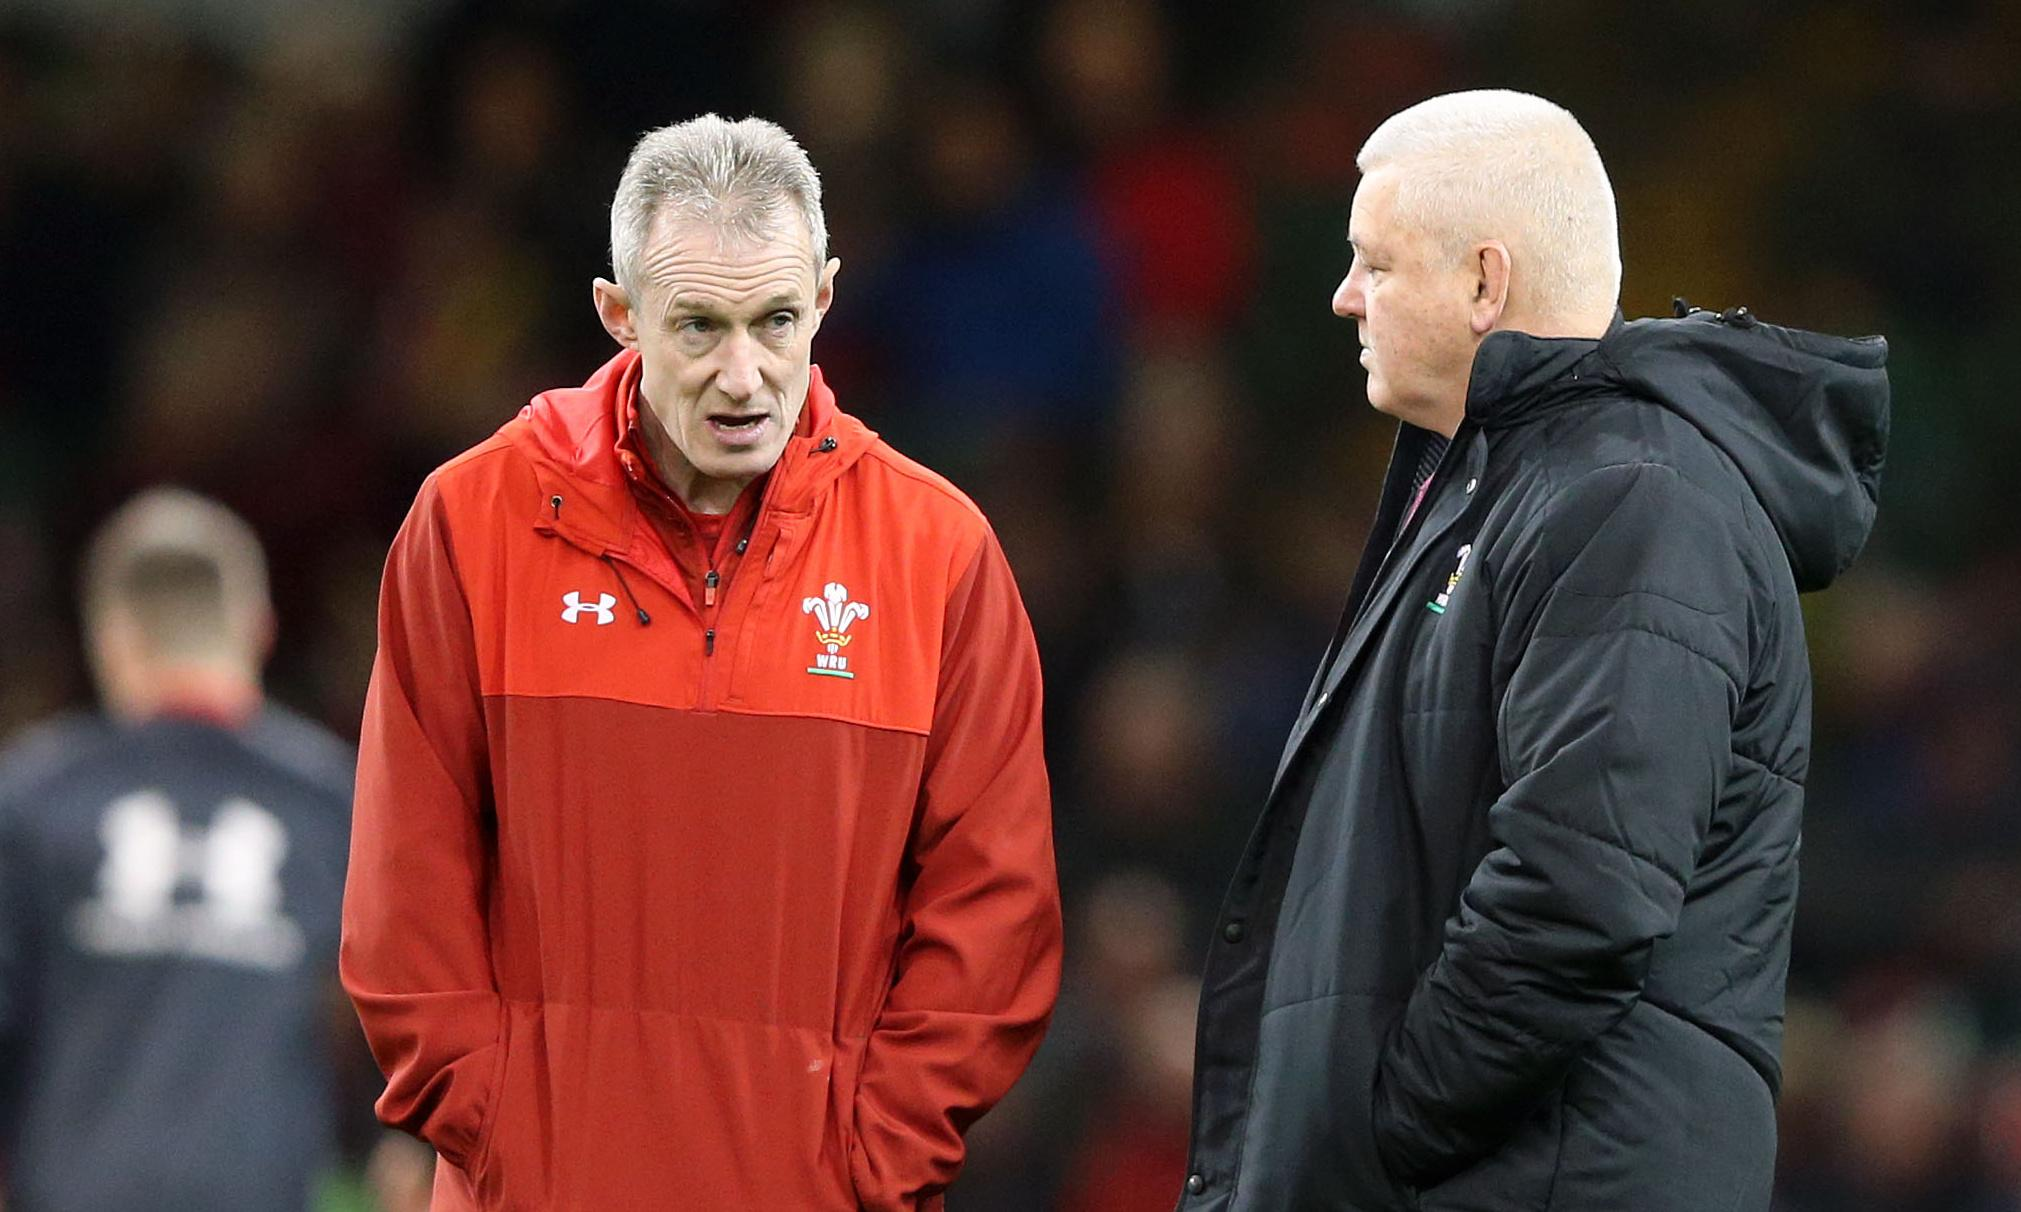 Rob Howley: a successful player and coach who struggled to win hearts